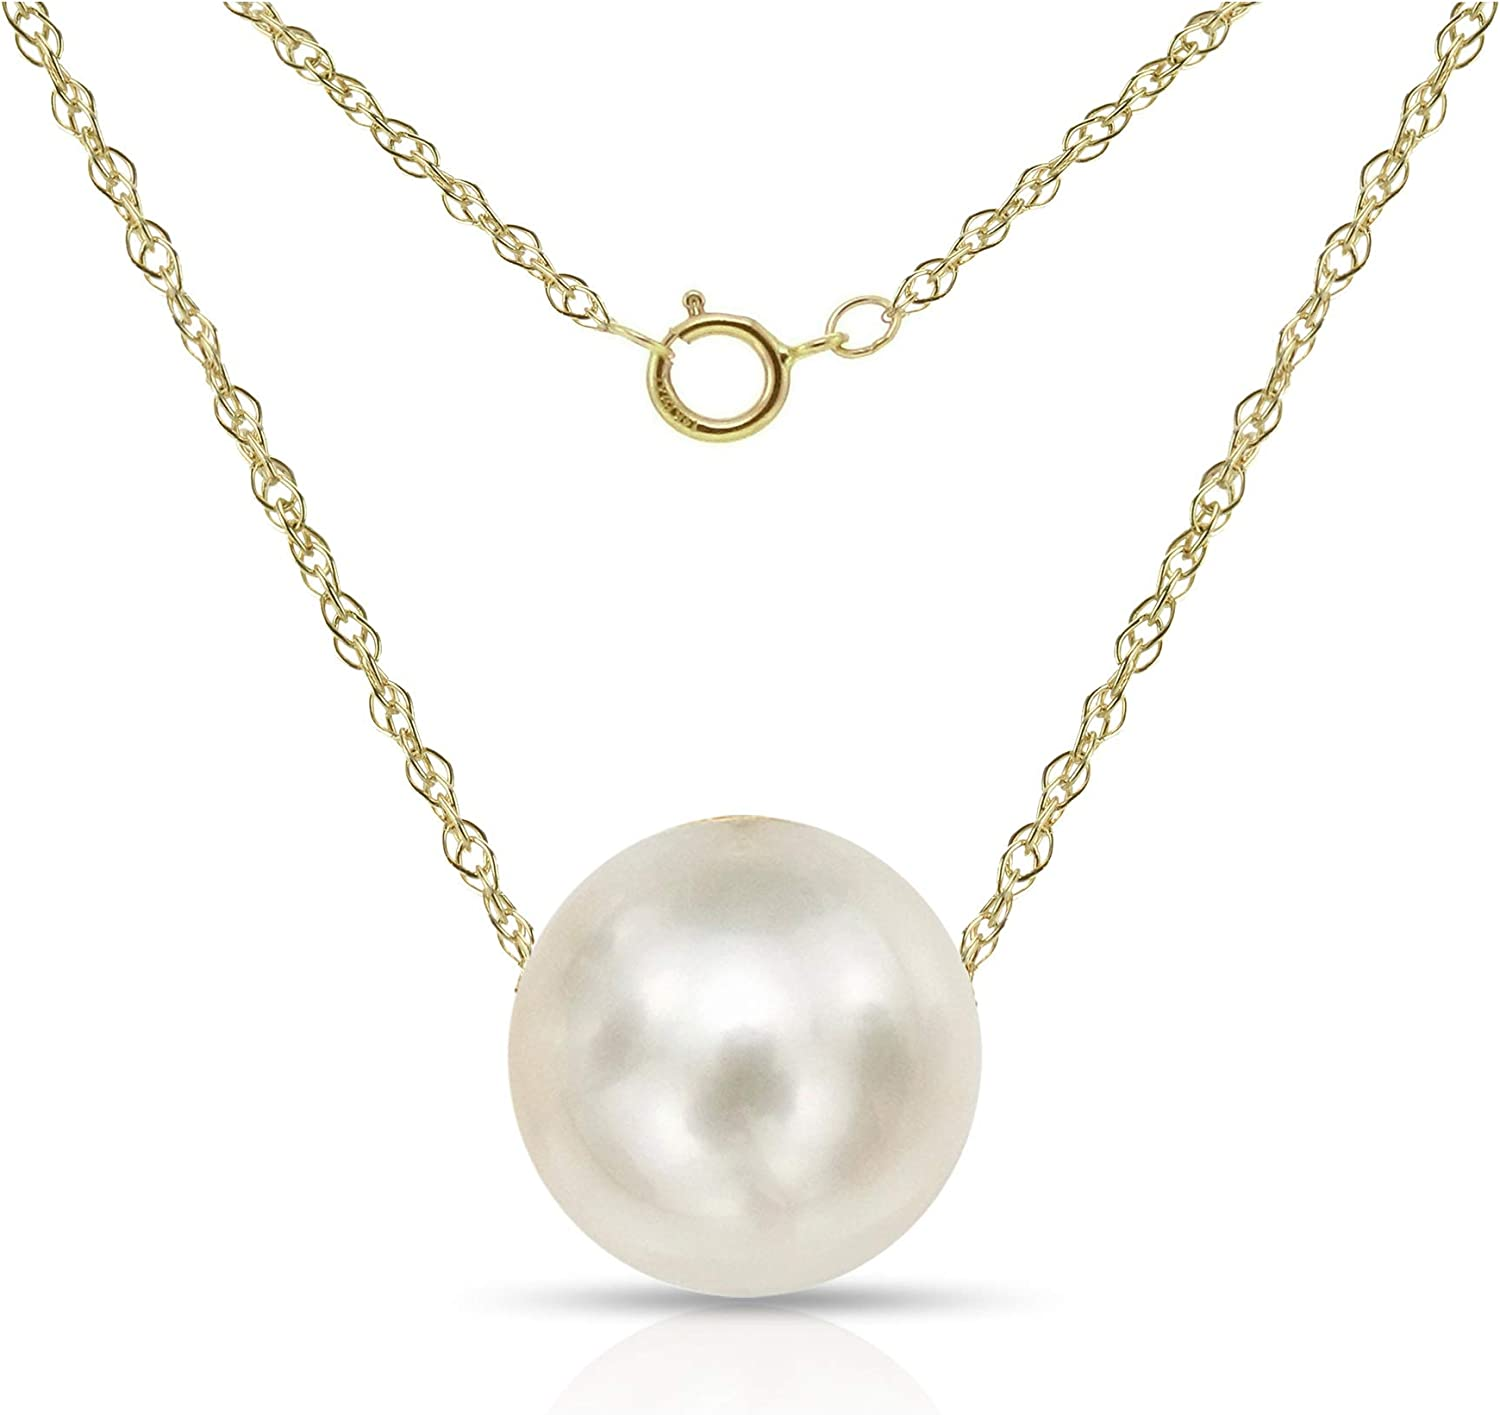 14K Gold Chain Necklace with Single Floating White Freshwater Cultured Pearl Pendant, 18